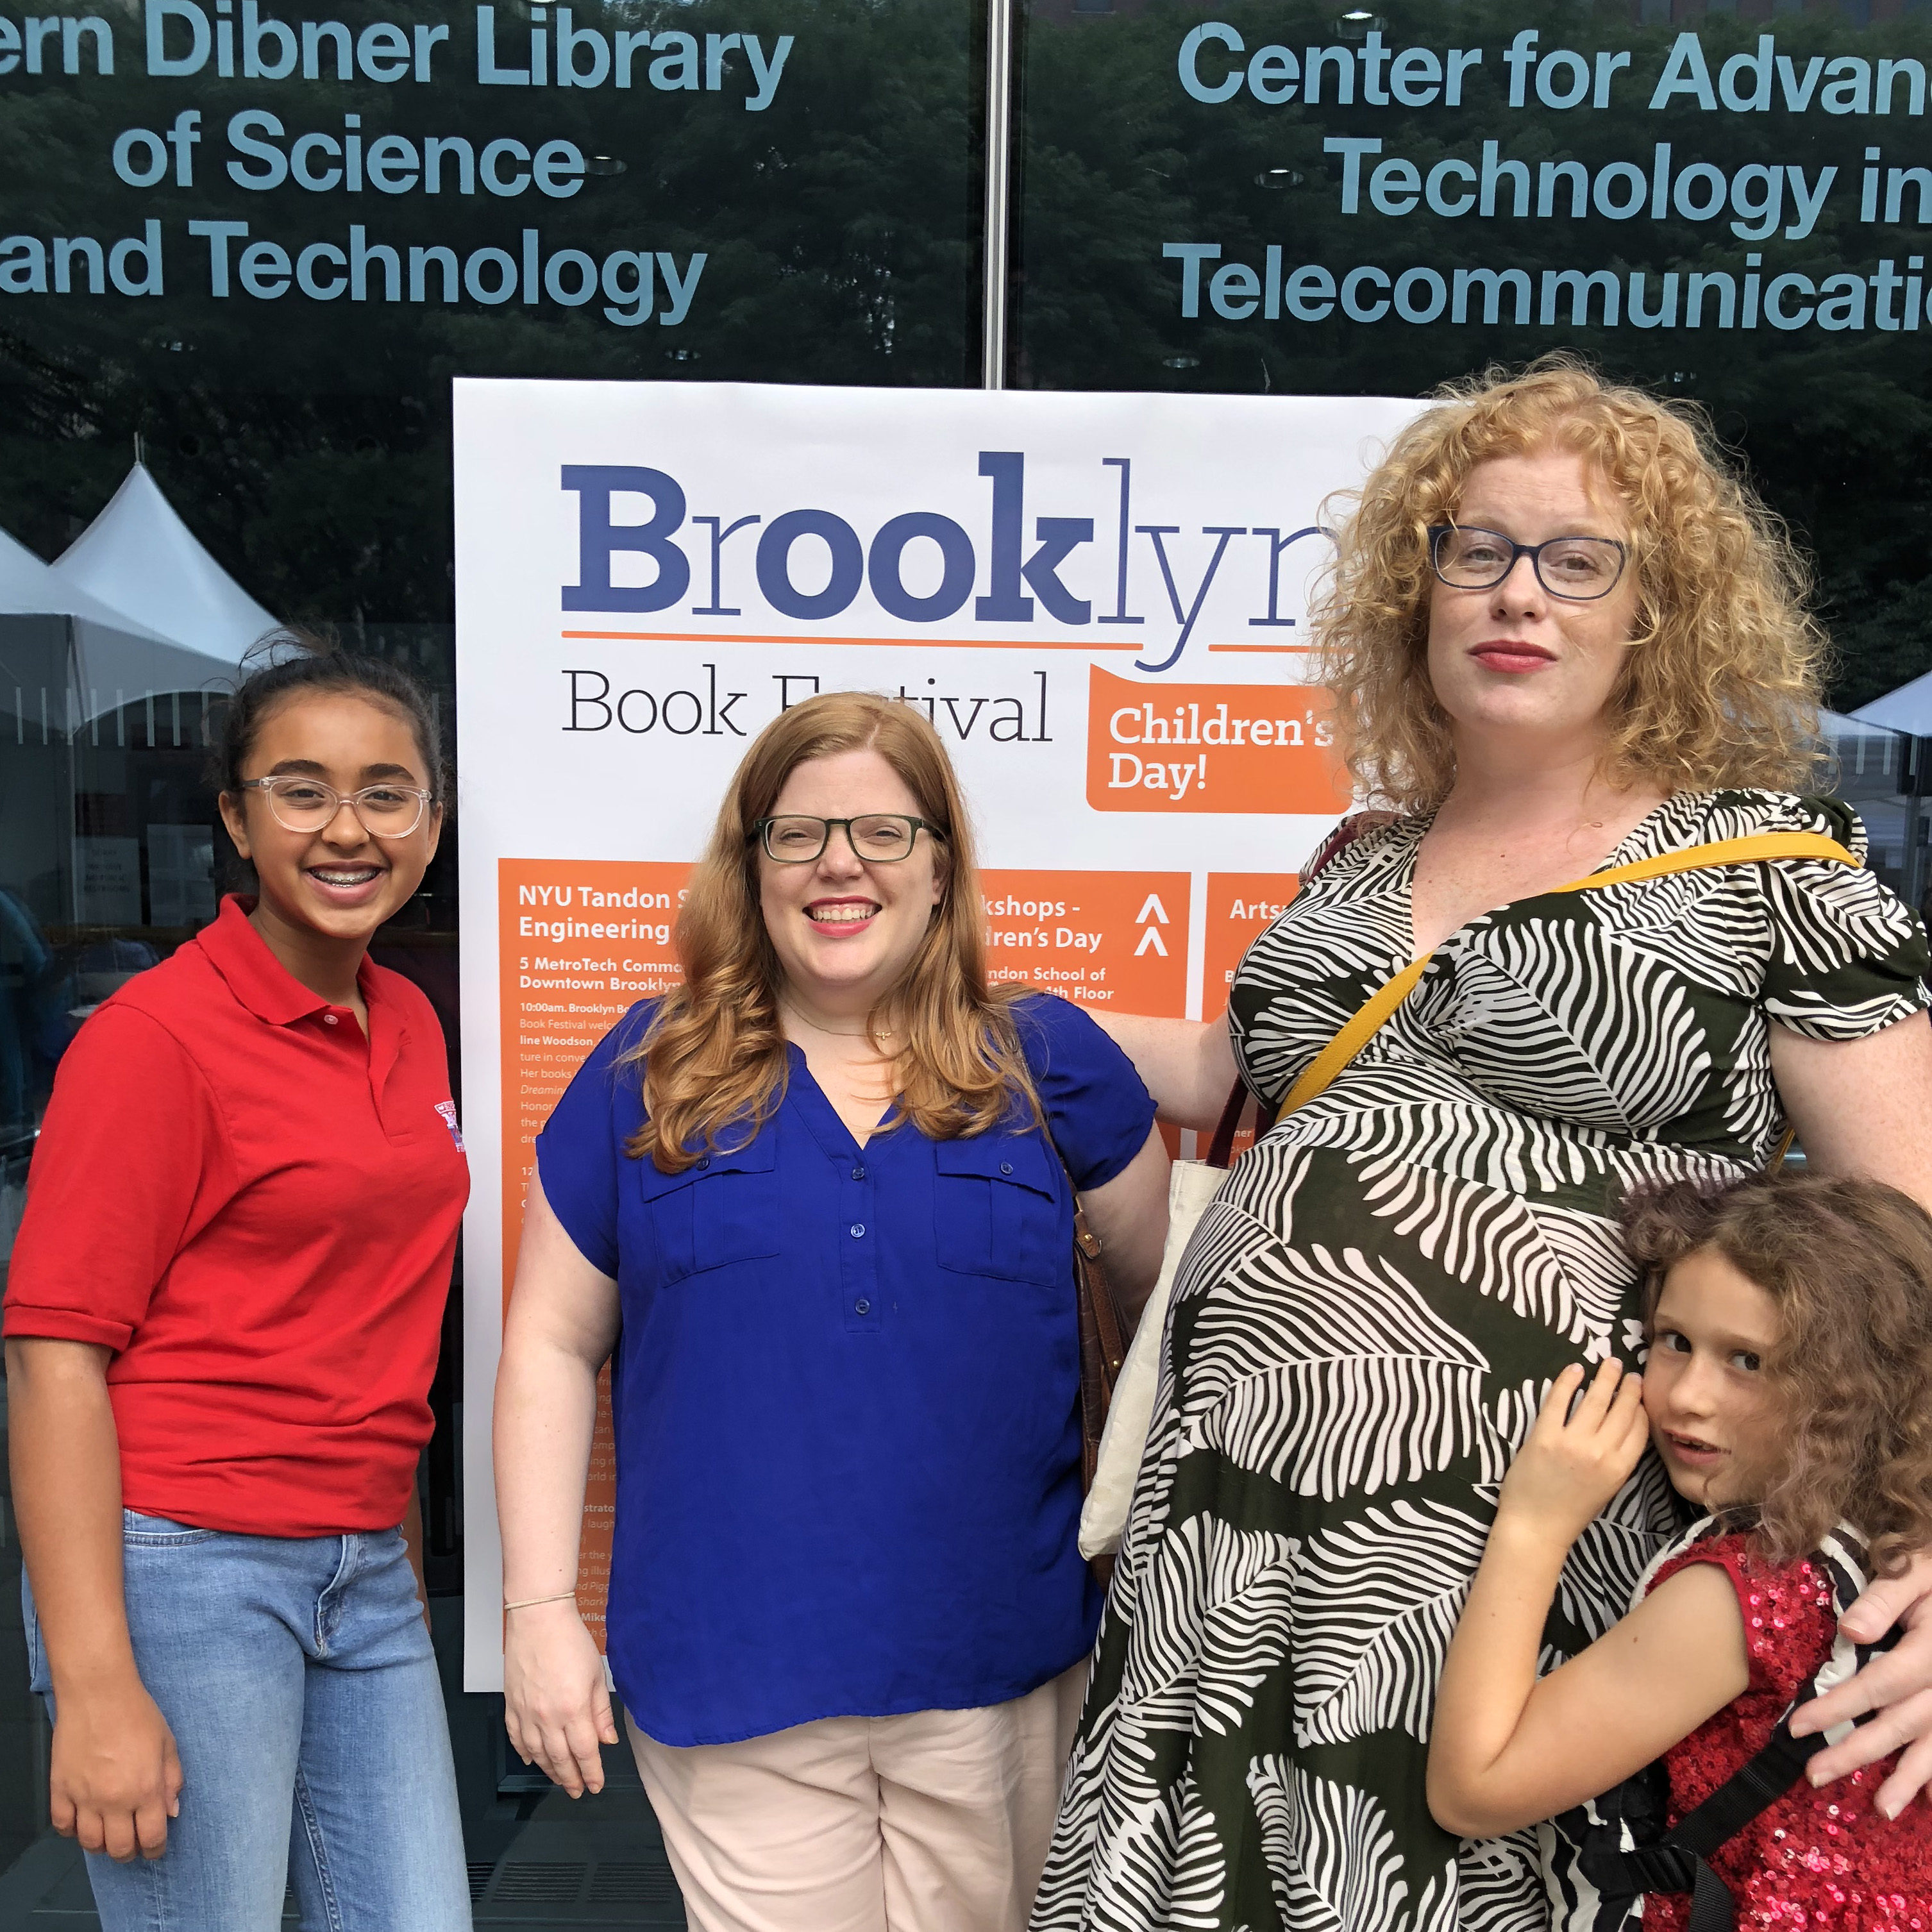 Sunaya with Meg Lemke and Jenny Abramowitz, members of the Children's and YA planning committee of the Brooklyn Book Festival